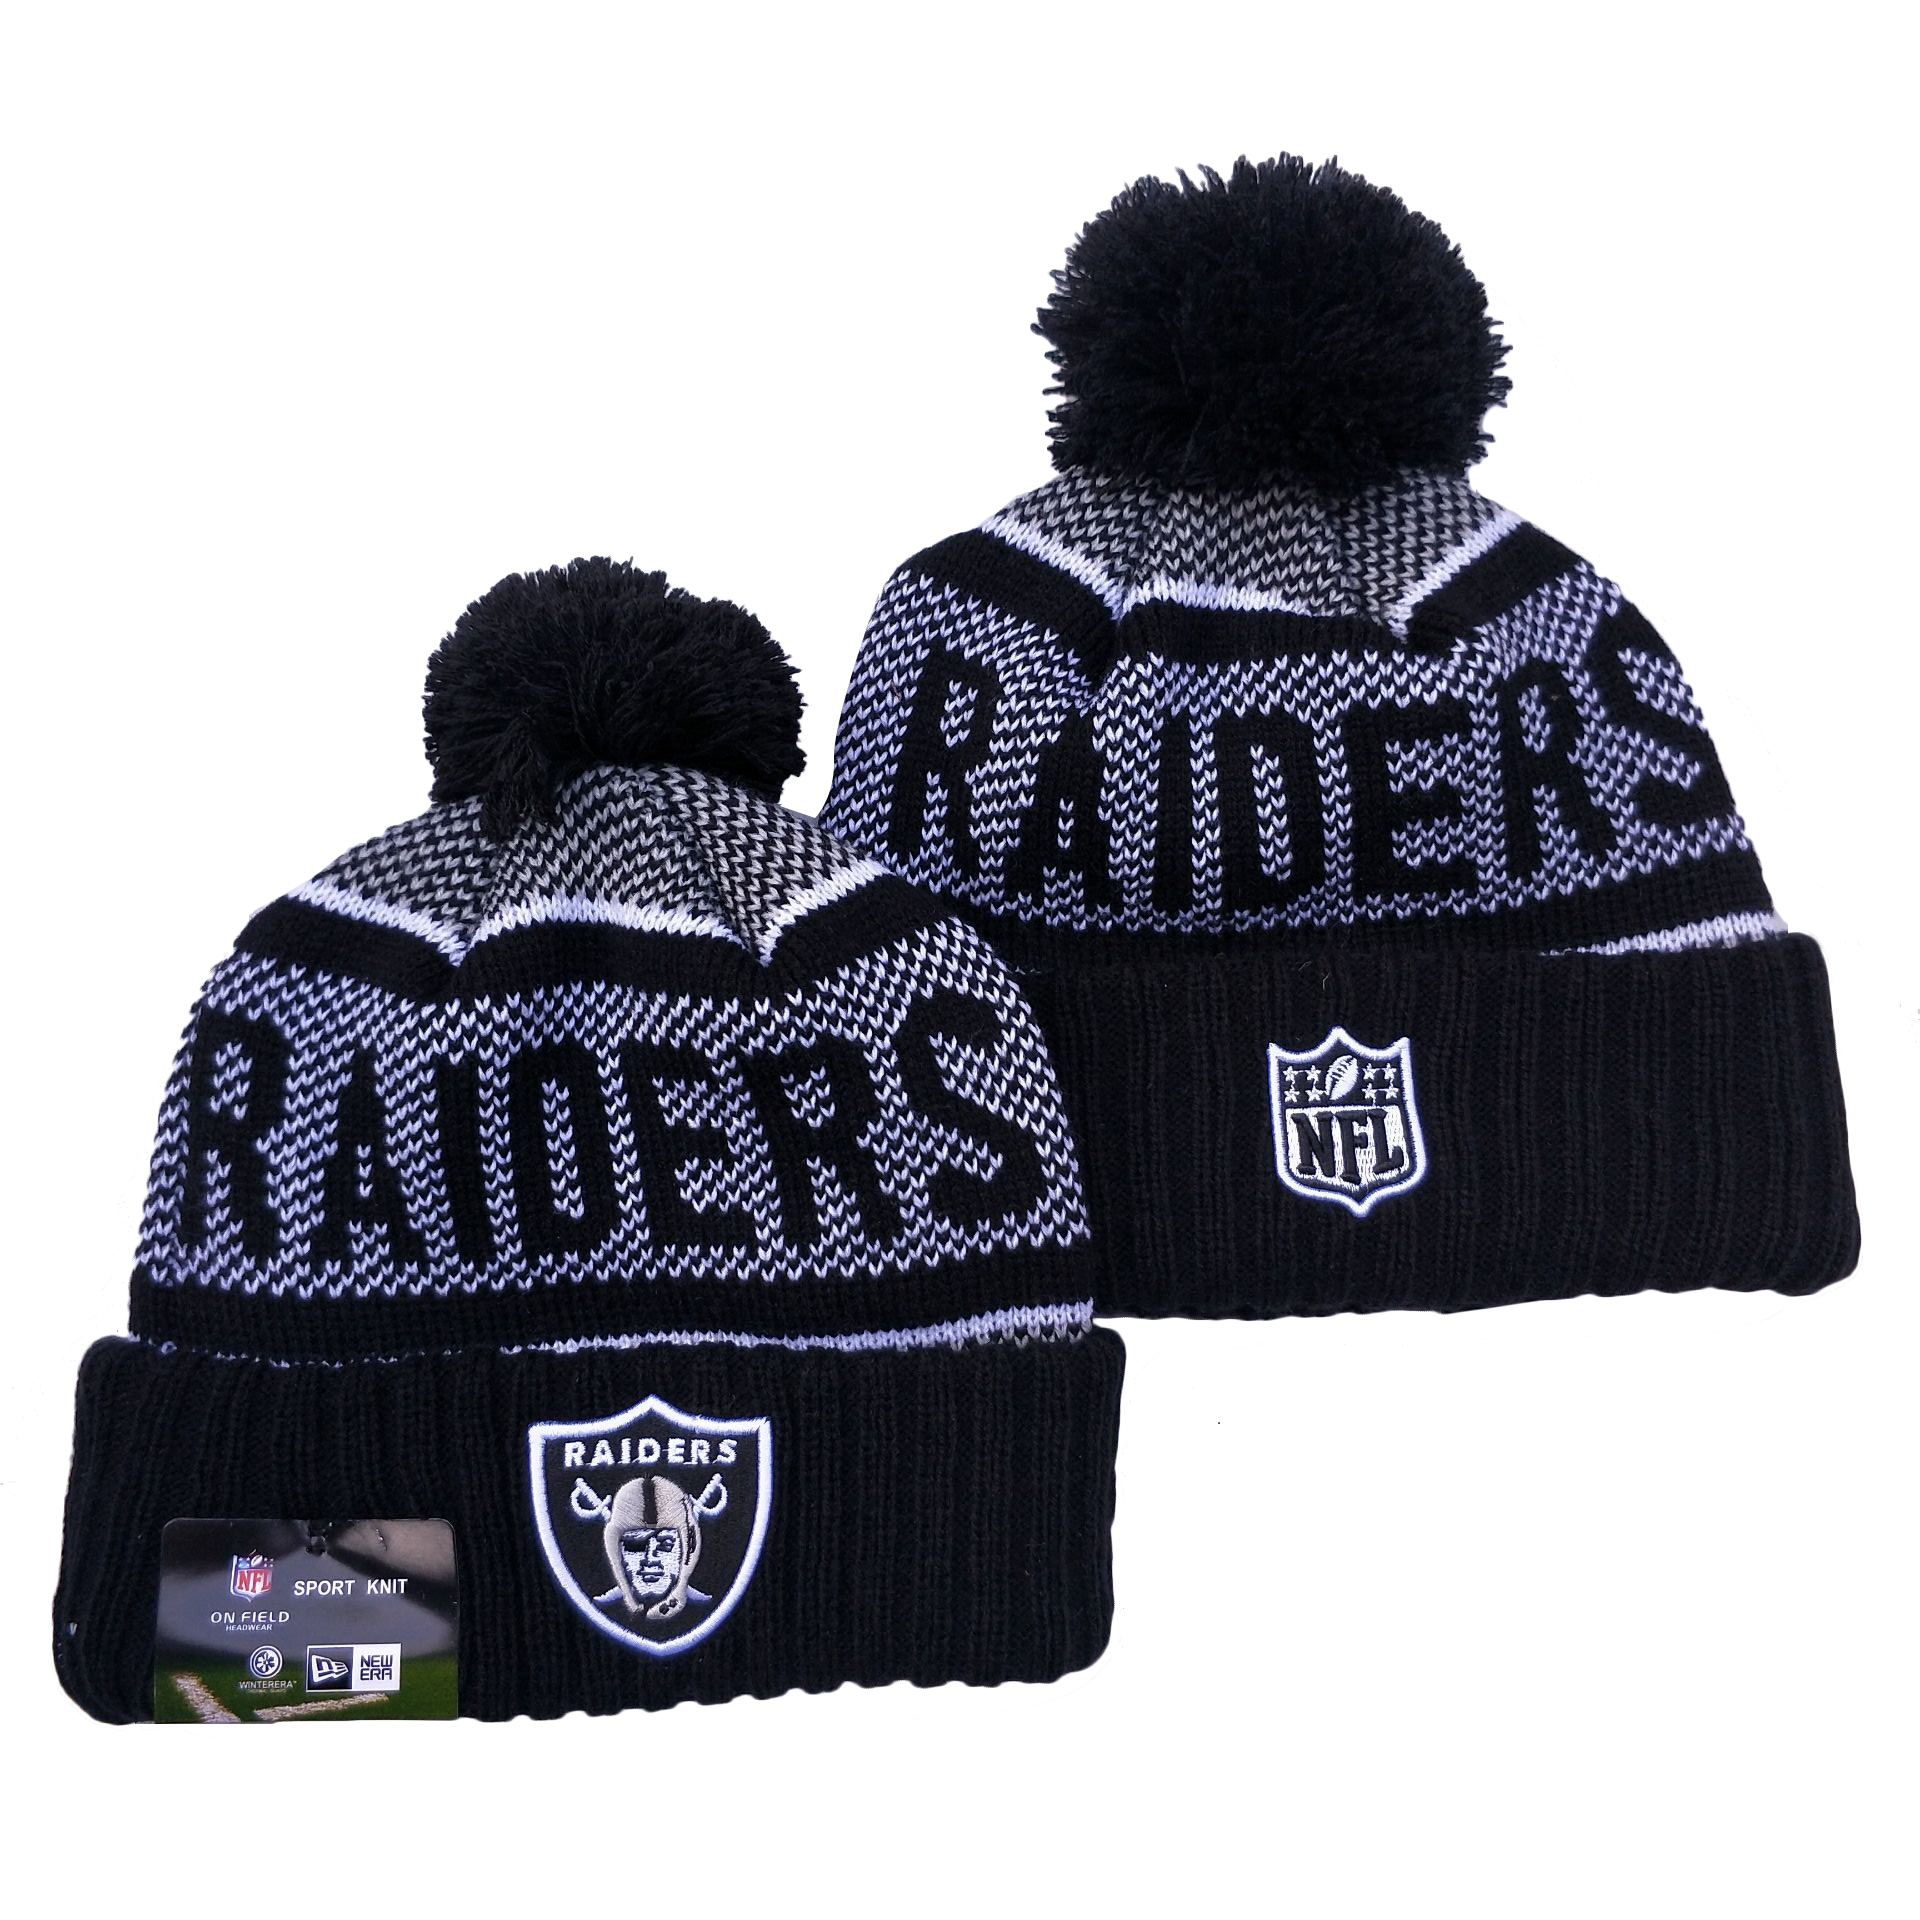 Las Vegas Raiders Knit Hats 079